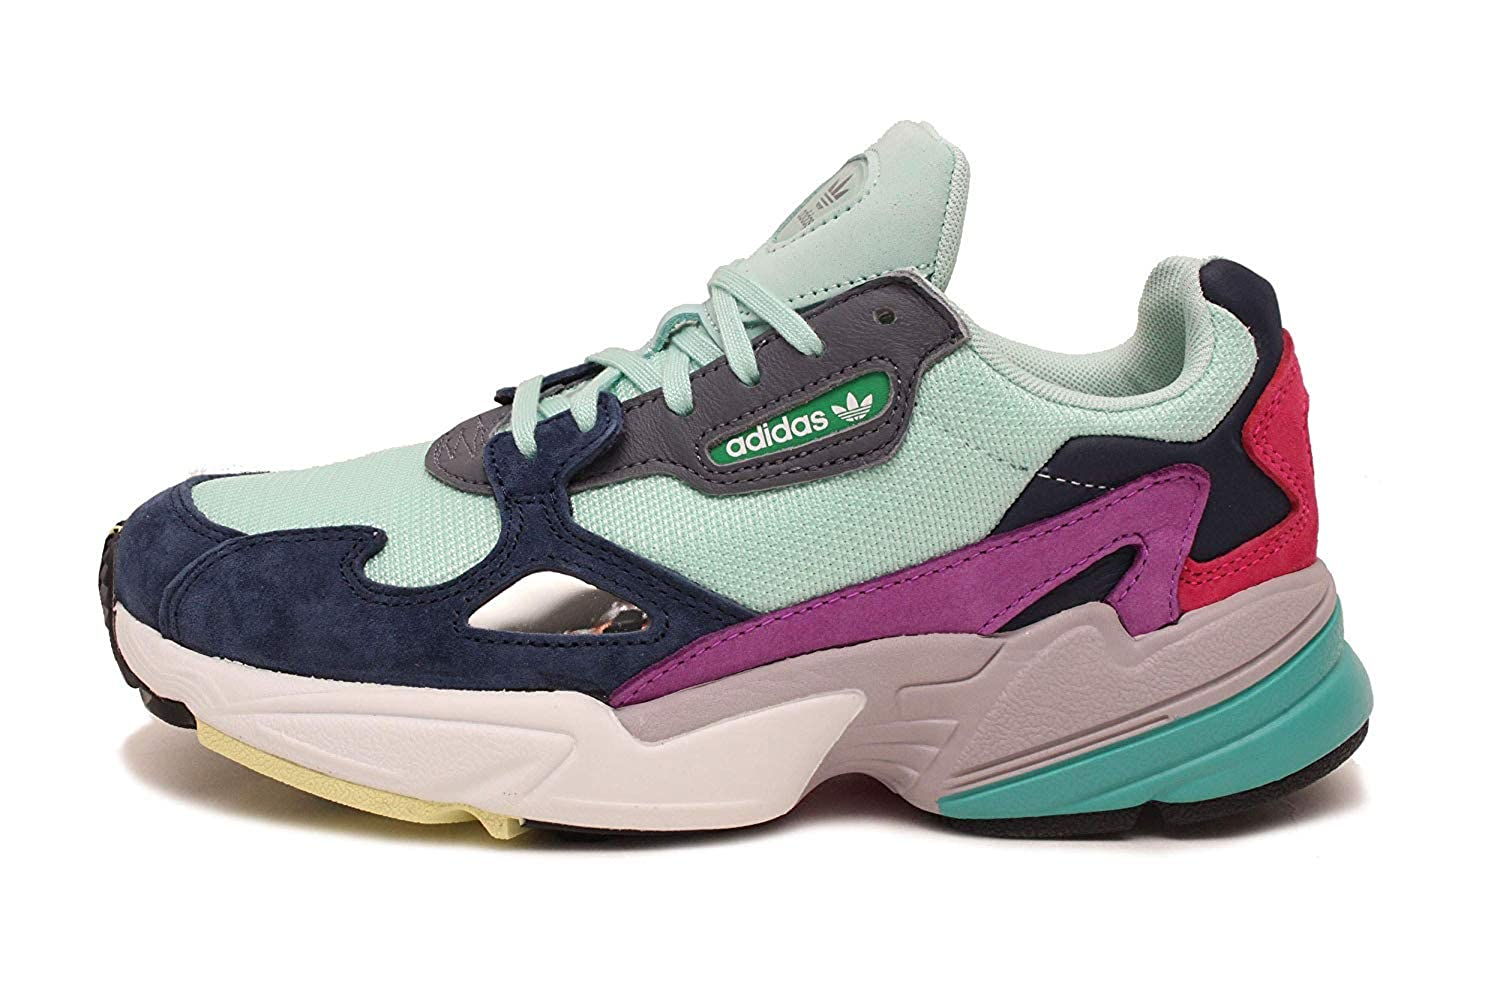 adidas Falcon Womens in Clear MintCollegiate Navy, 5.5